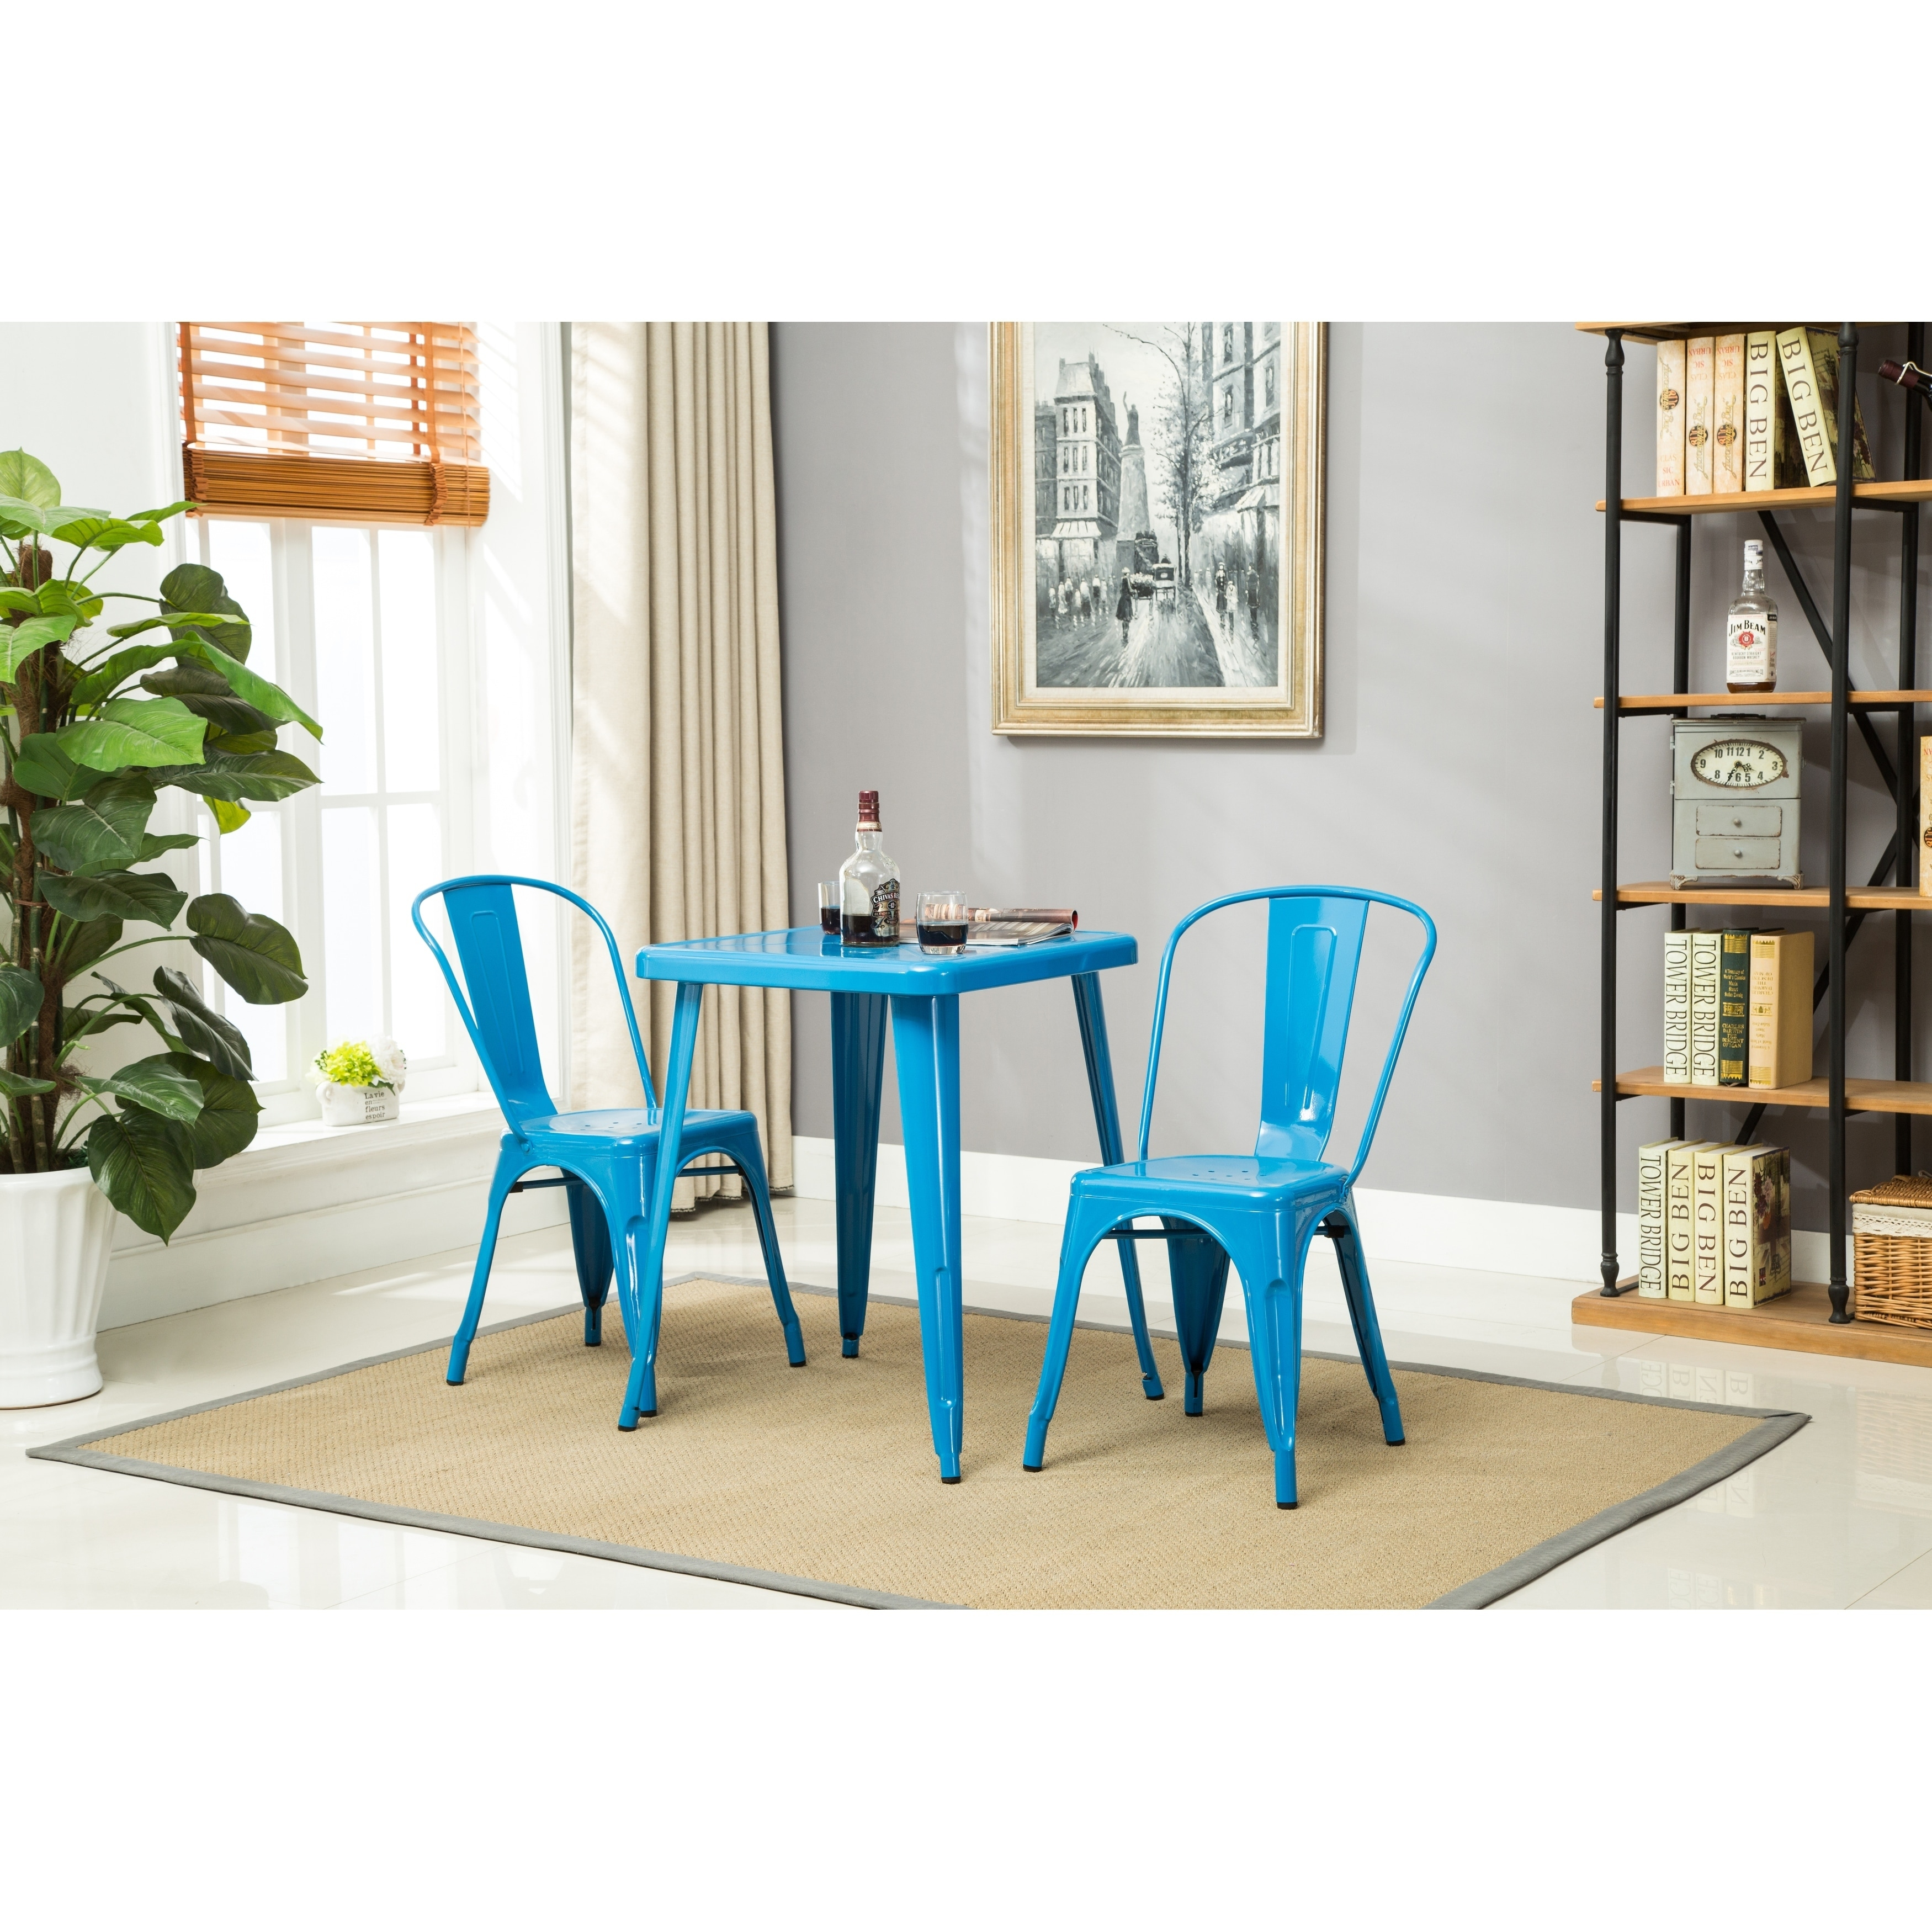 Buy Porthos Home Kitchen & Dining Room Chairs Online at Overstock ...